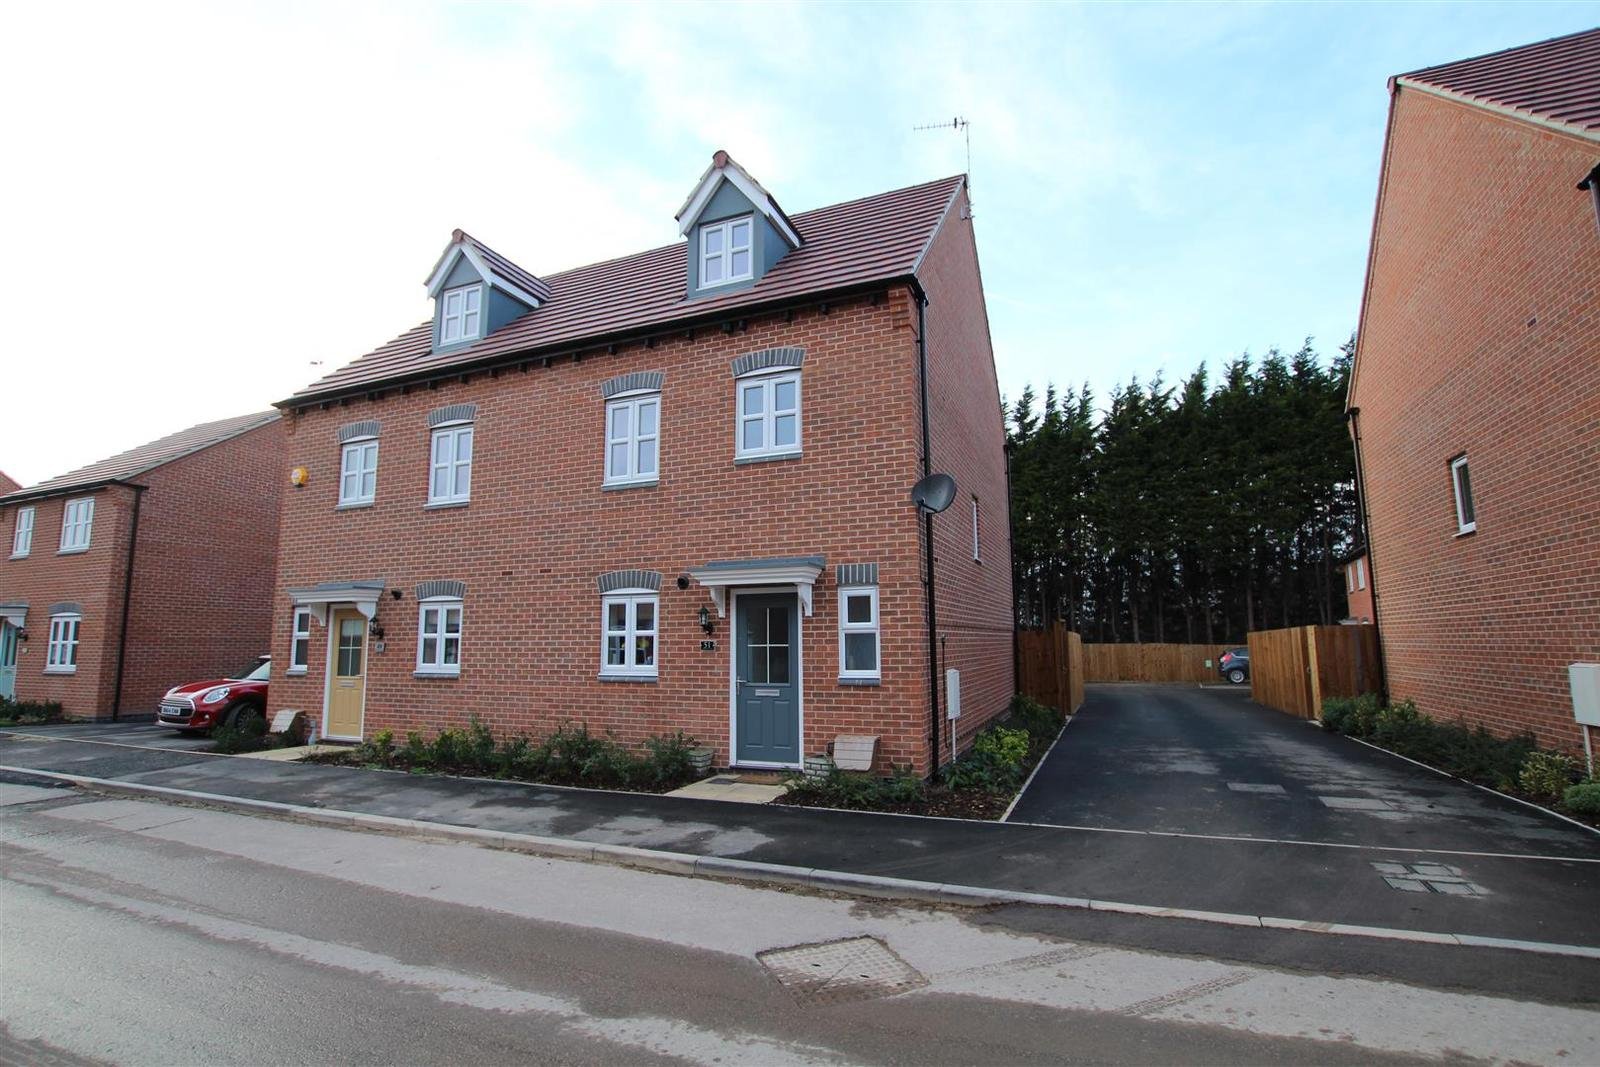 4 Bedrooms Detached House for sale in Cascade Close, Burton-On-Trent